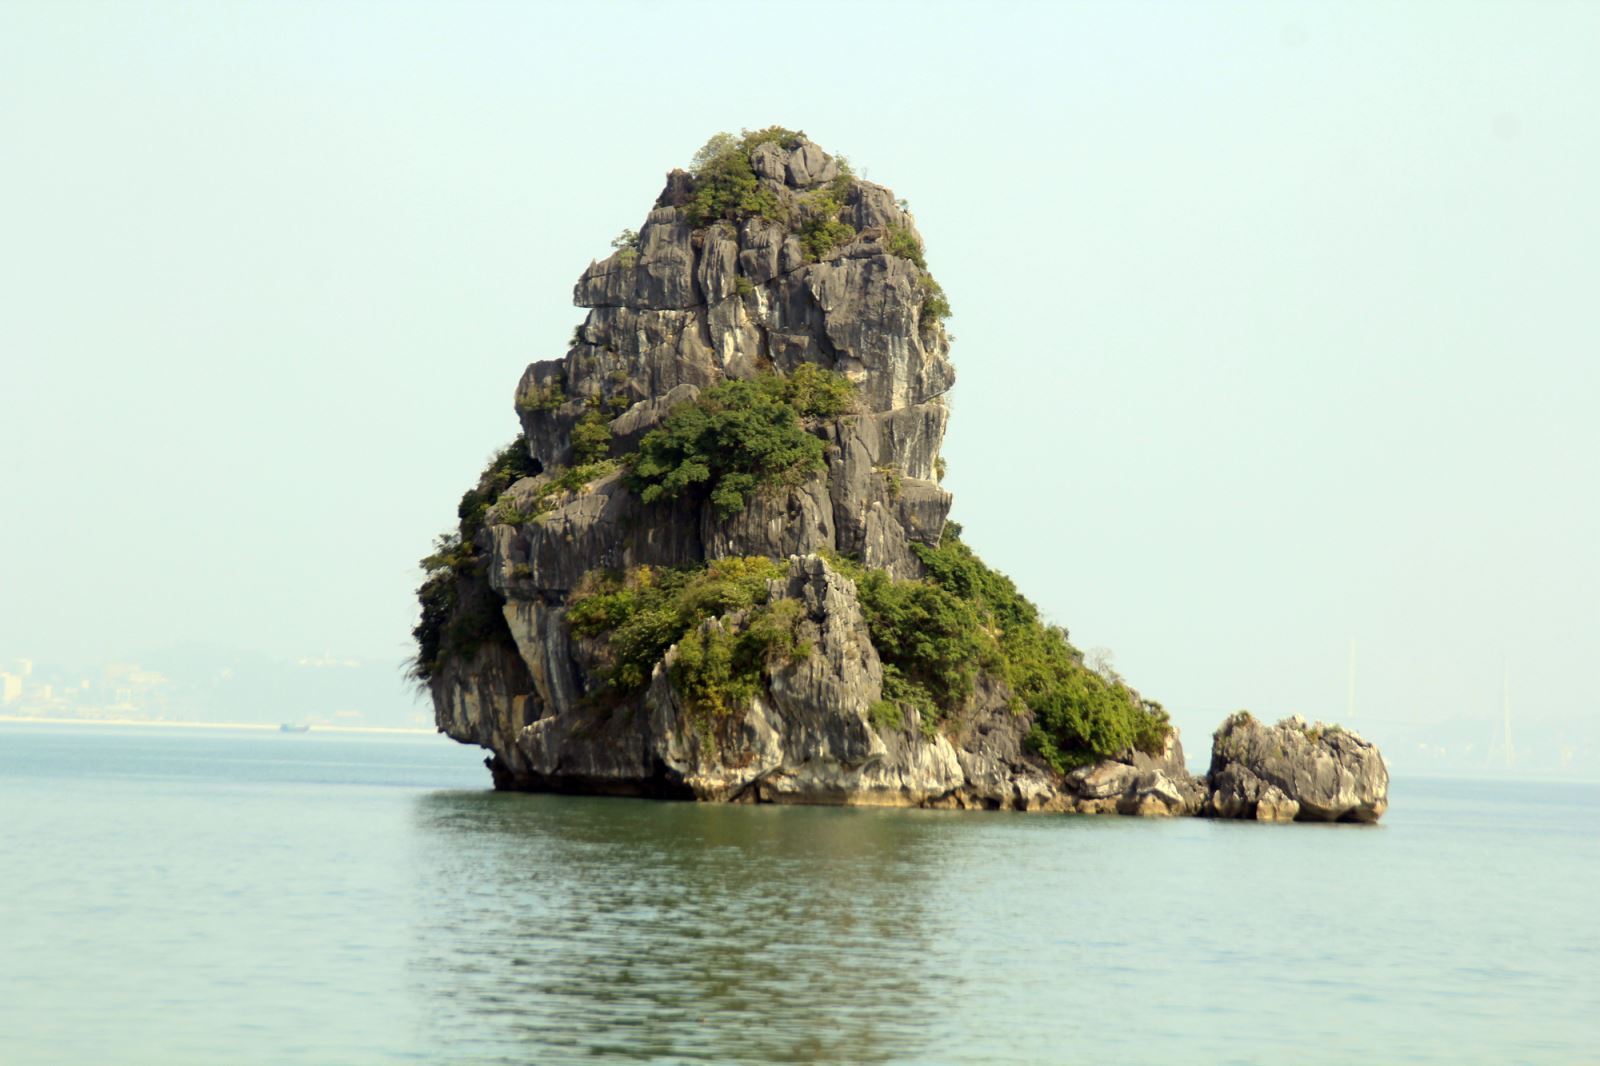 Halong lonely islet